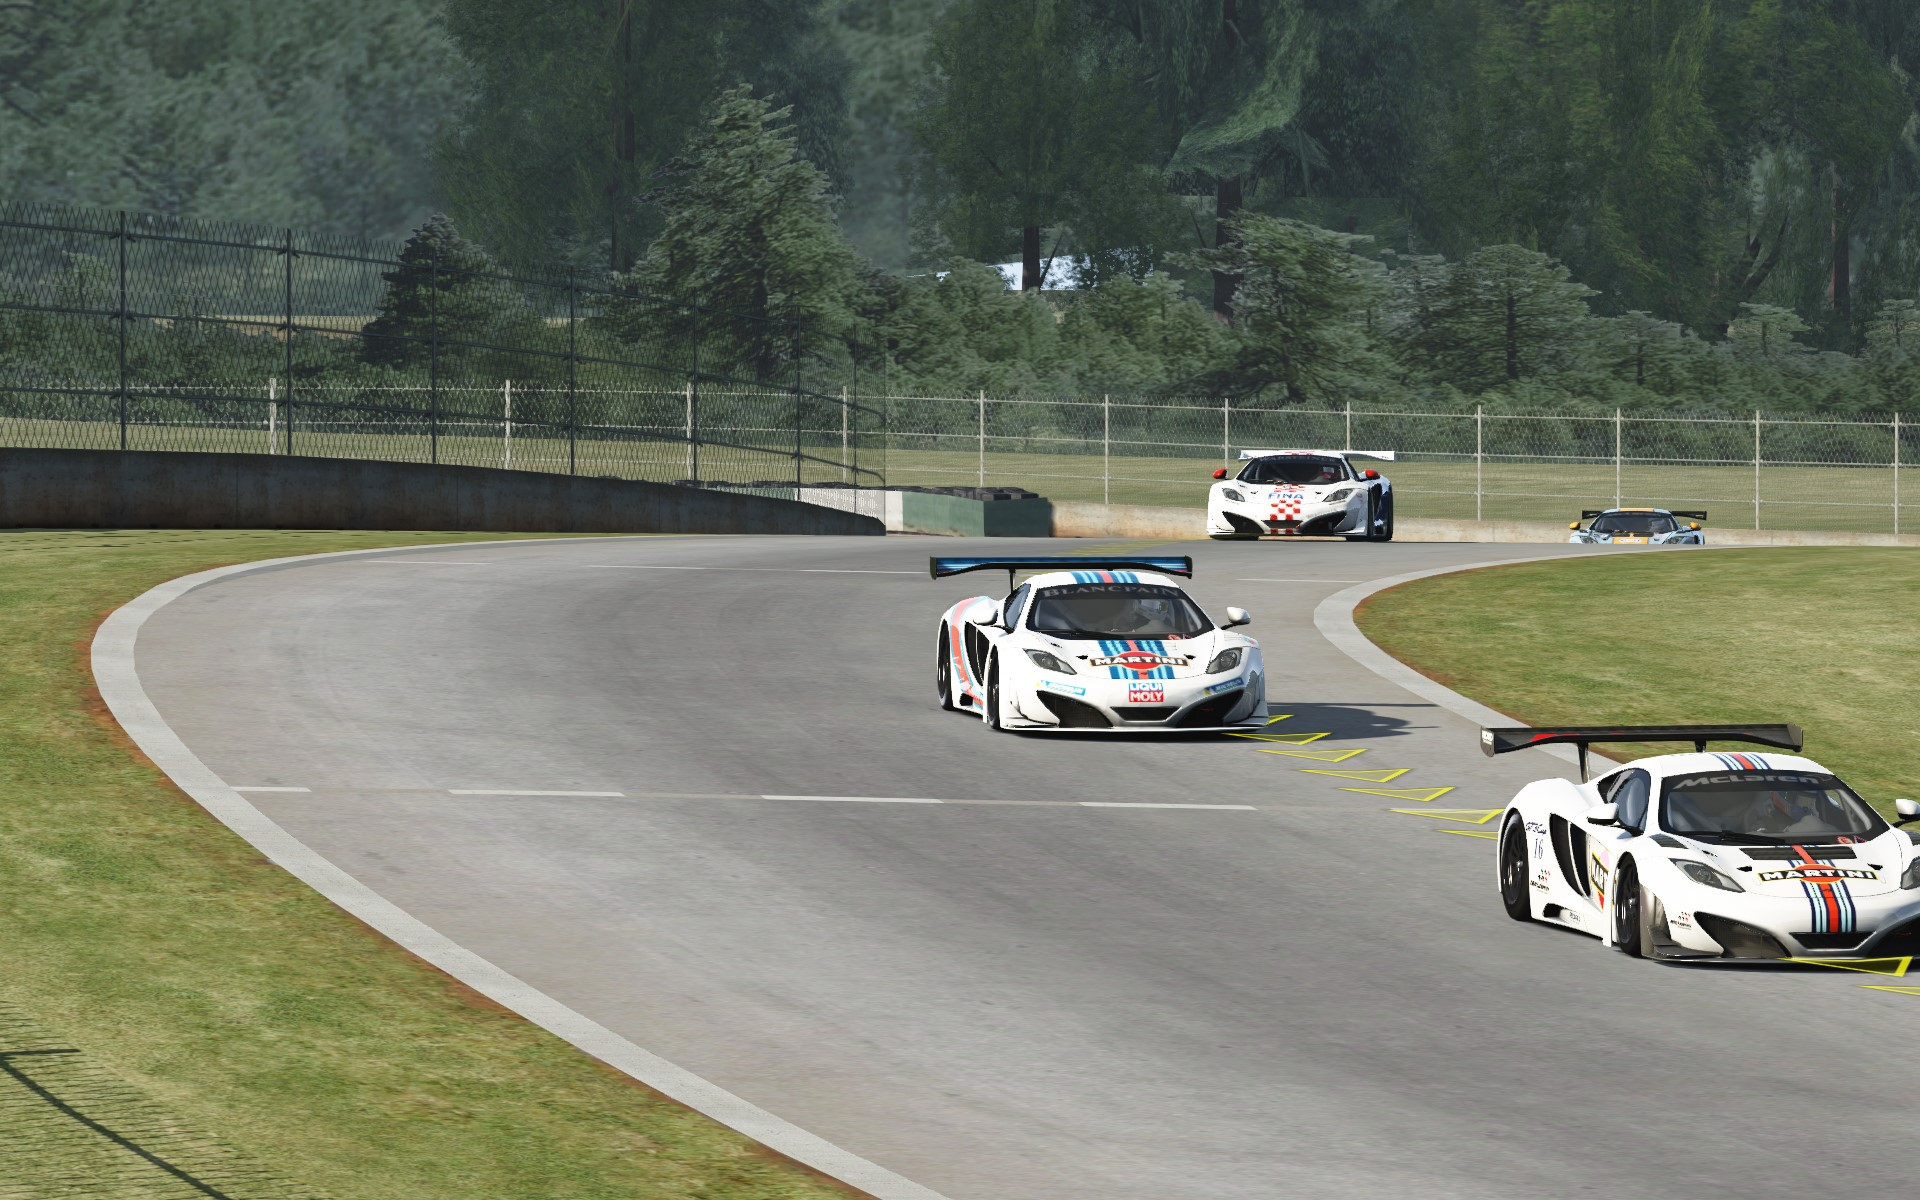 Screenshot_mclaren_mp412c_gt3_road atlanta_10-8-115-13-58-26.jpg